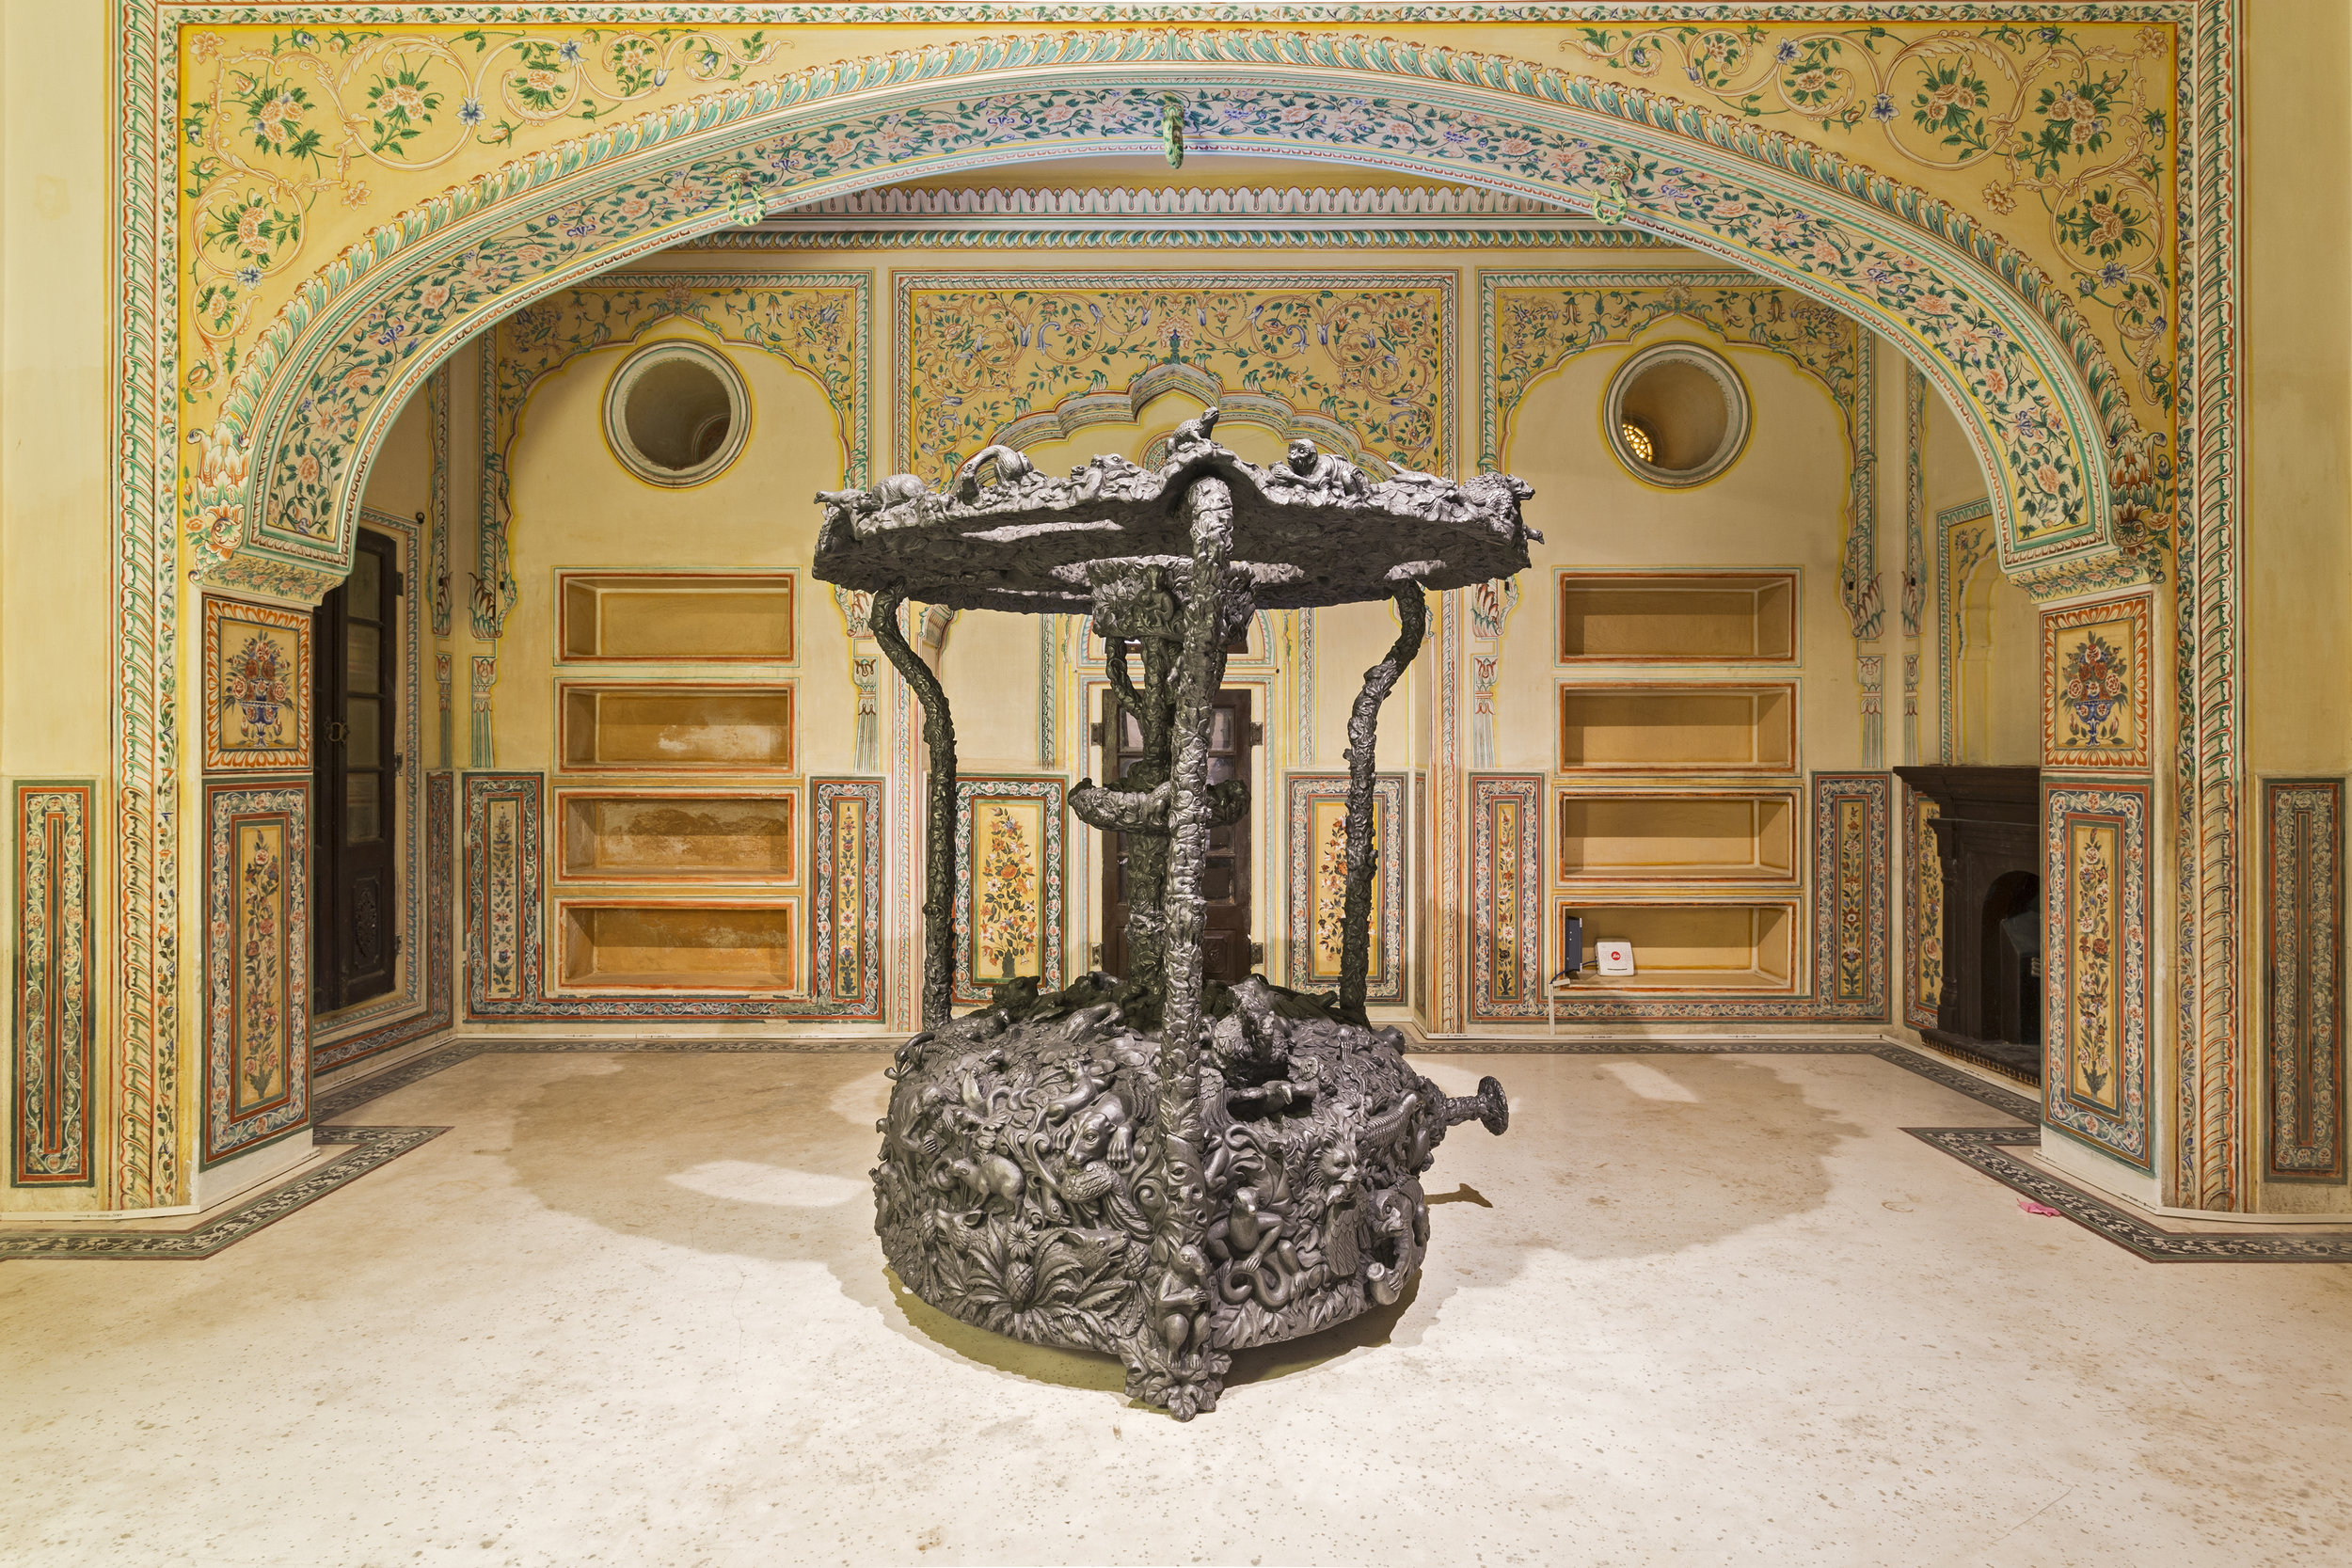 'Annexation' by Jitish Kallat is among the 62 sculptures by around 25 artists presented in the space